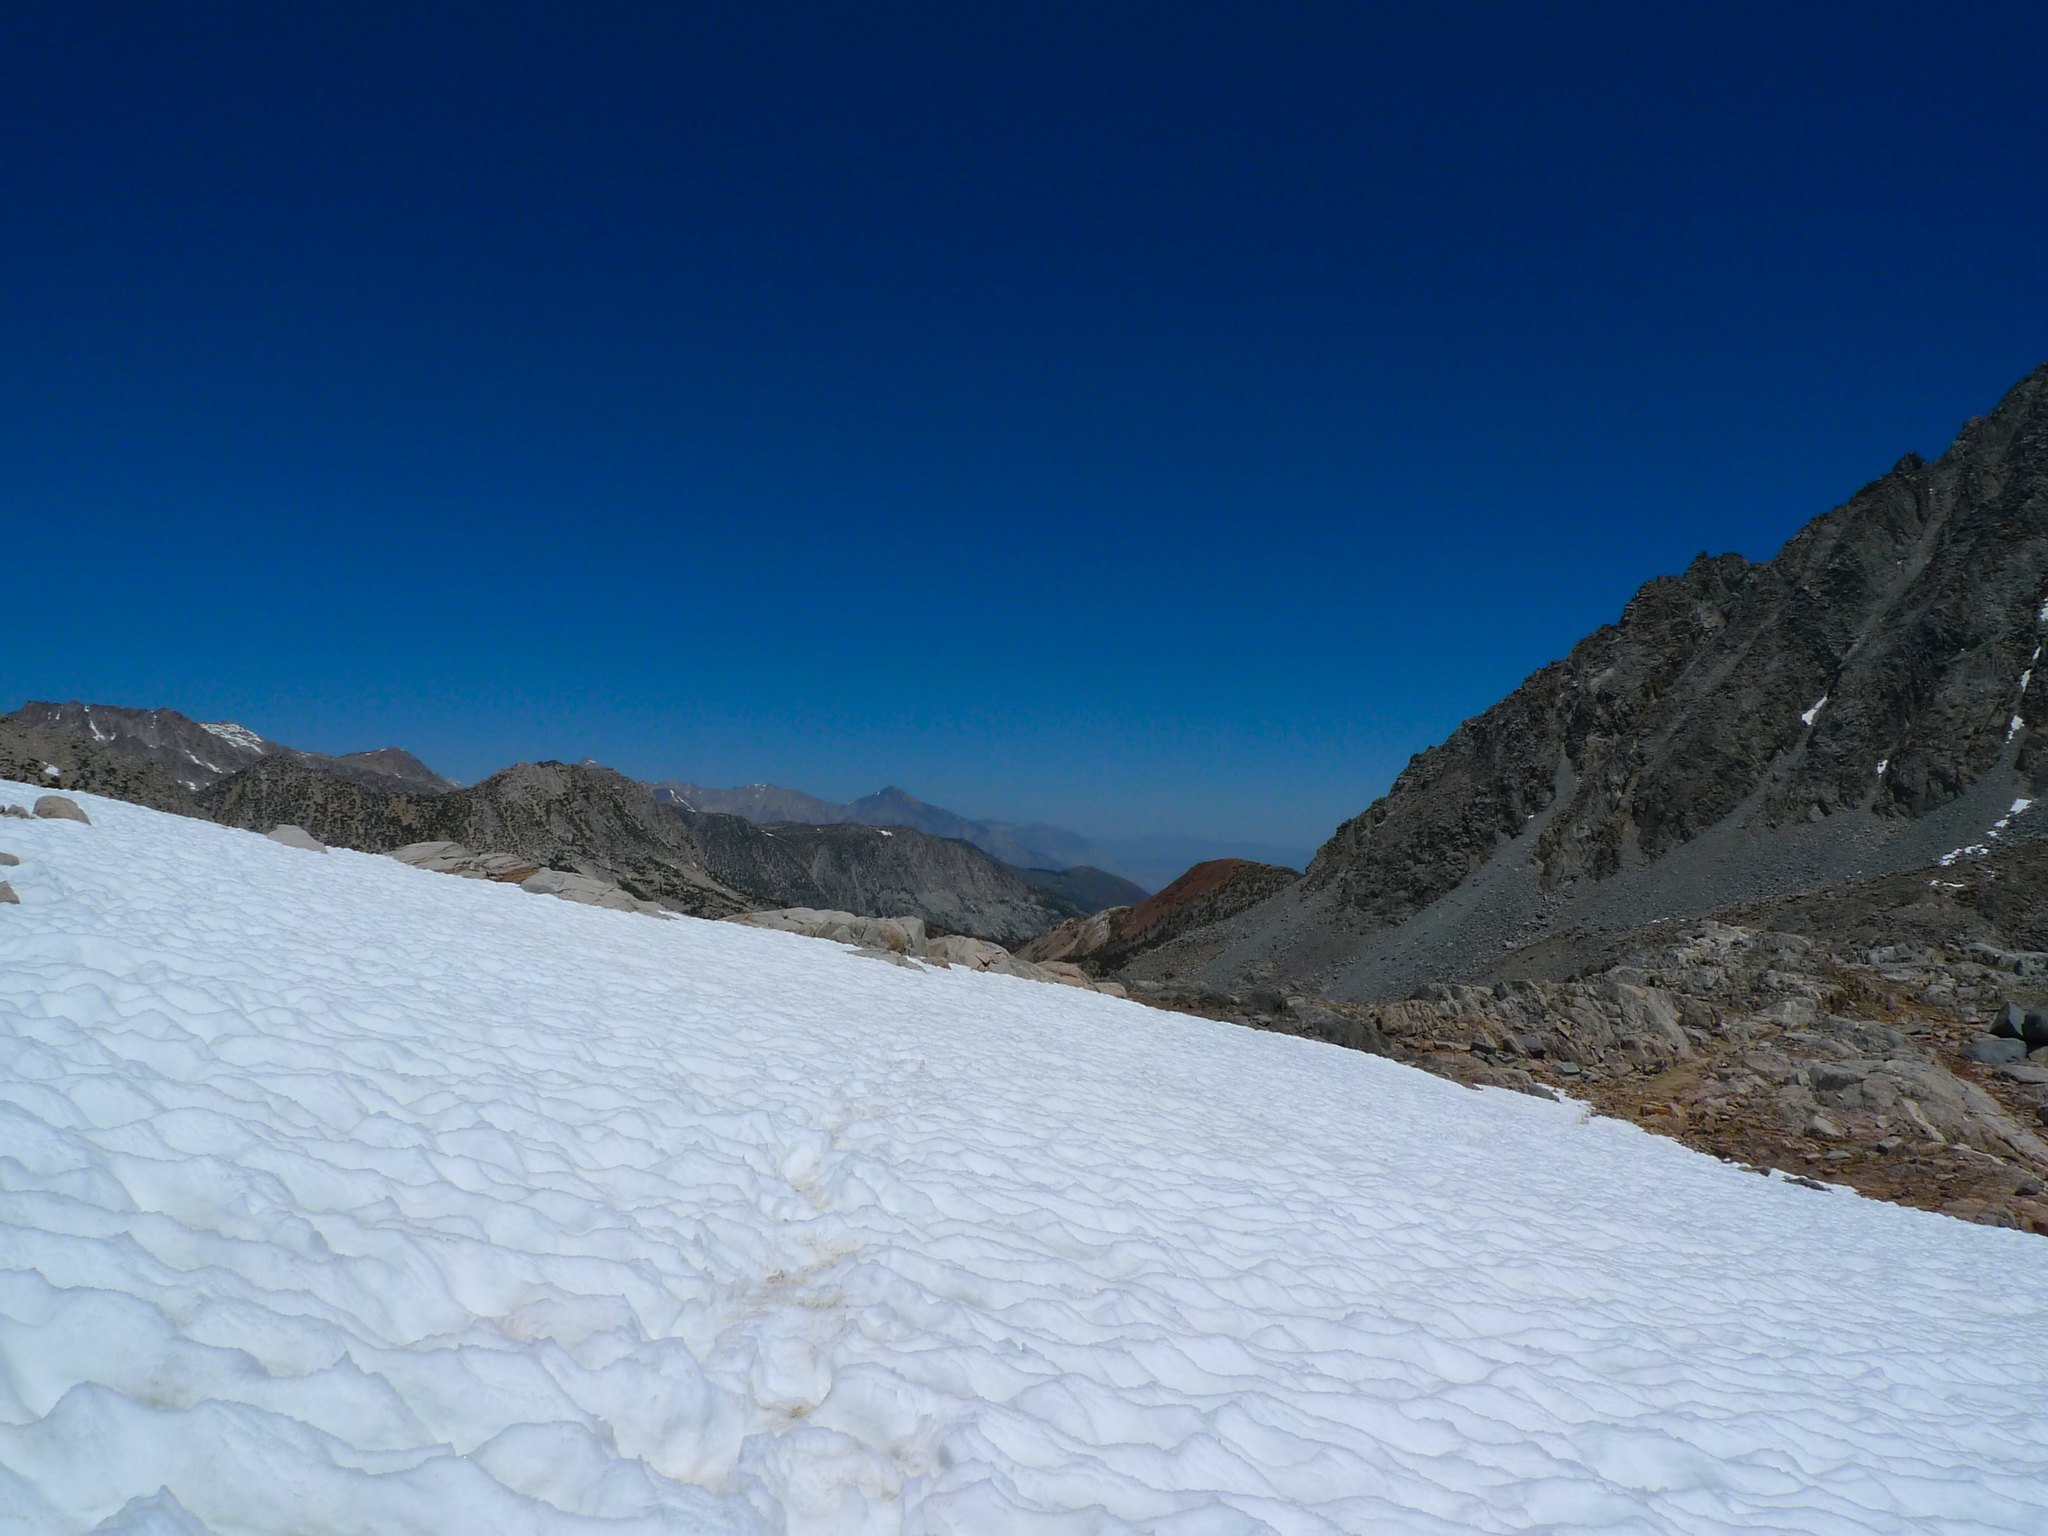 Crossing the snowfields again to descend Bishop Pass